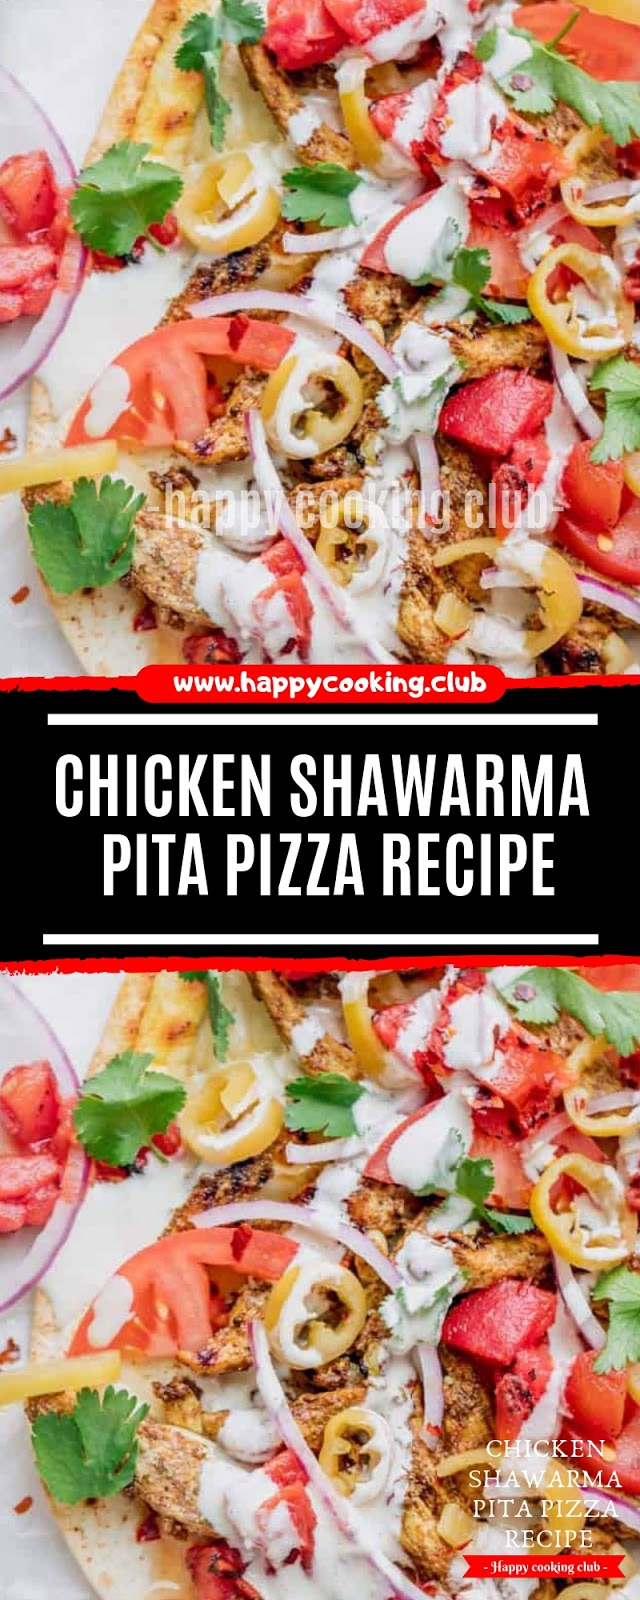 Chicken Shawarma Pita Pizza Recipe